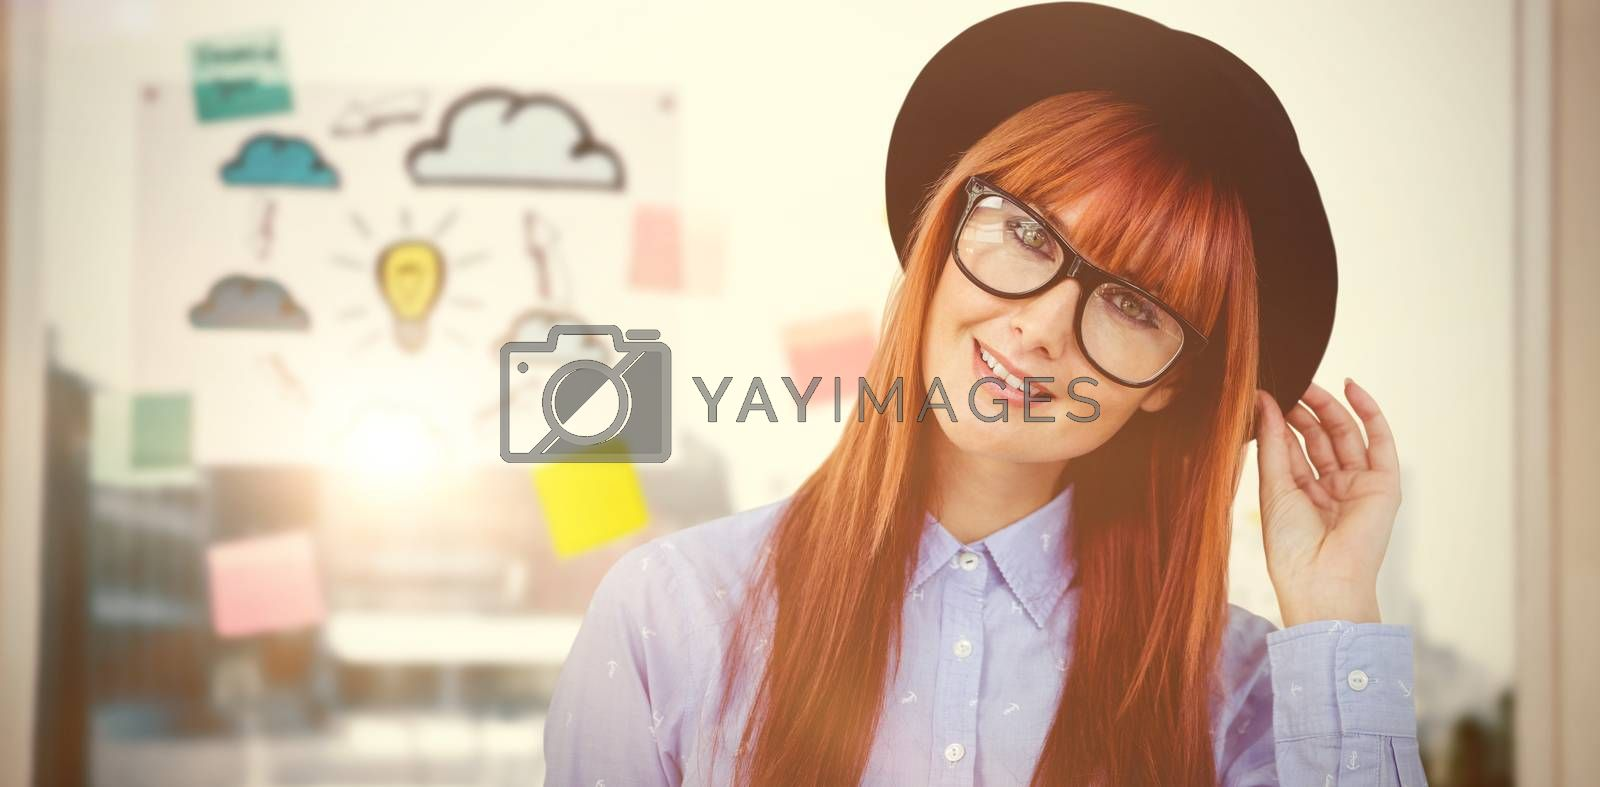 Smiling hipster woman posing face to the camera against adhesive notes on window